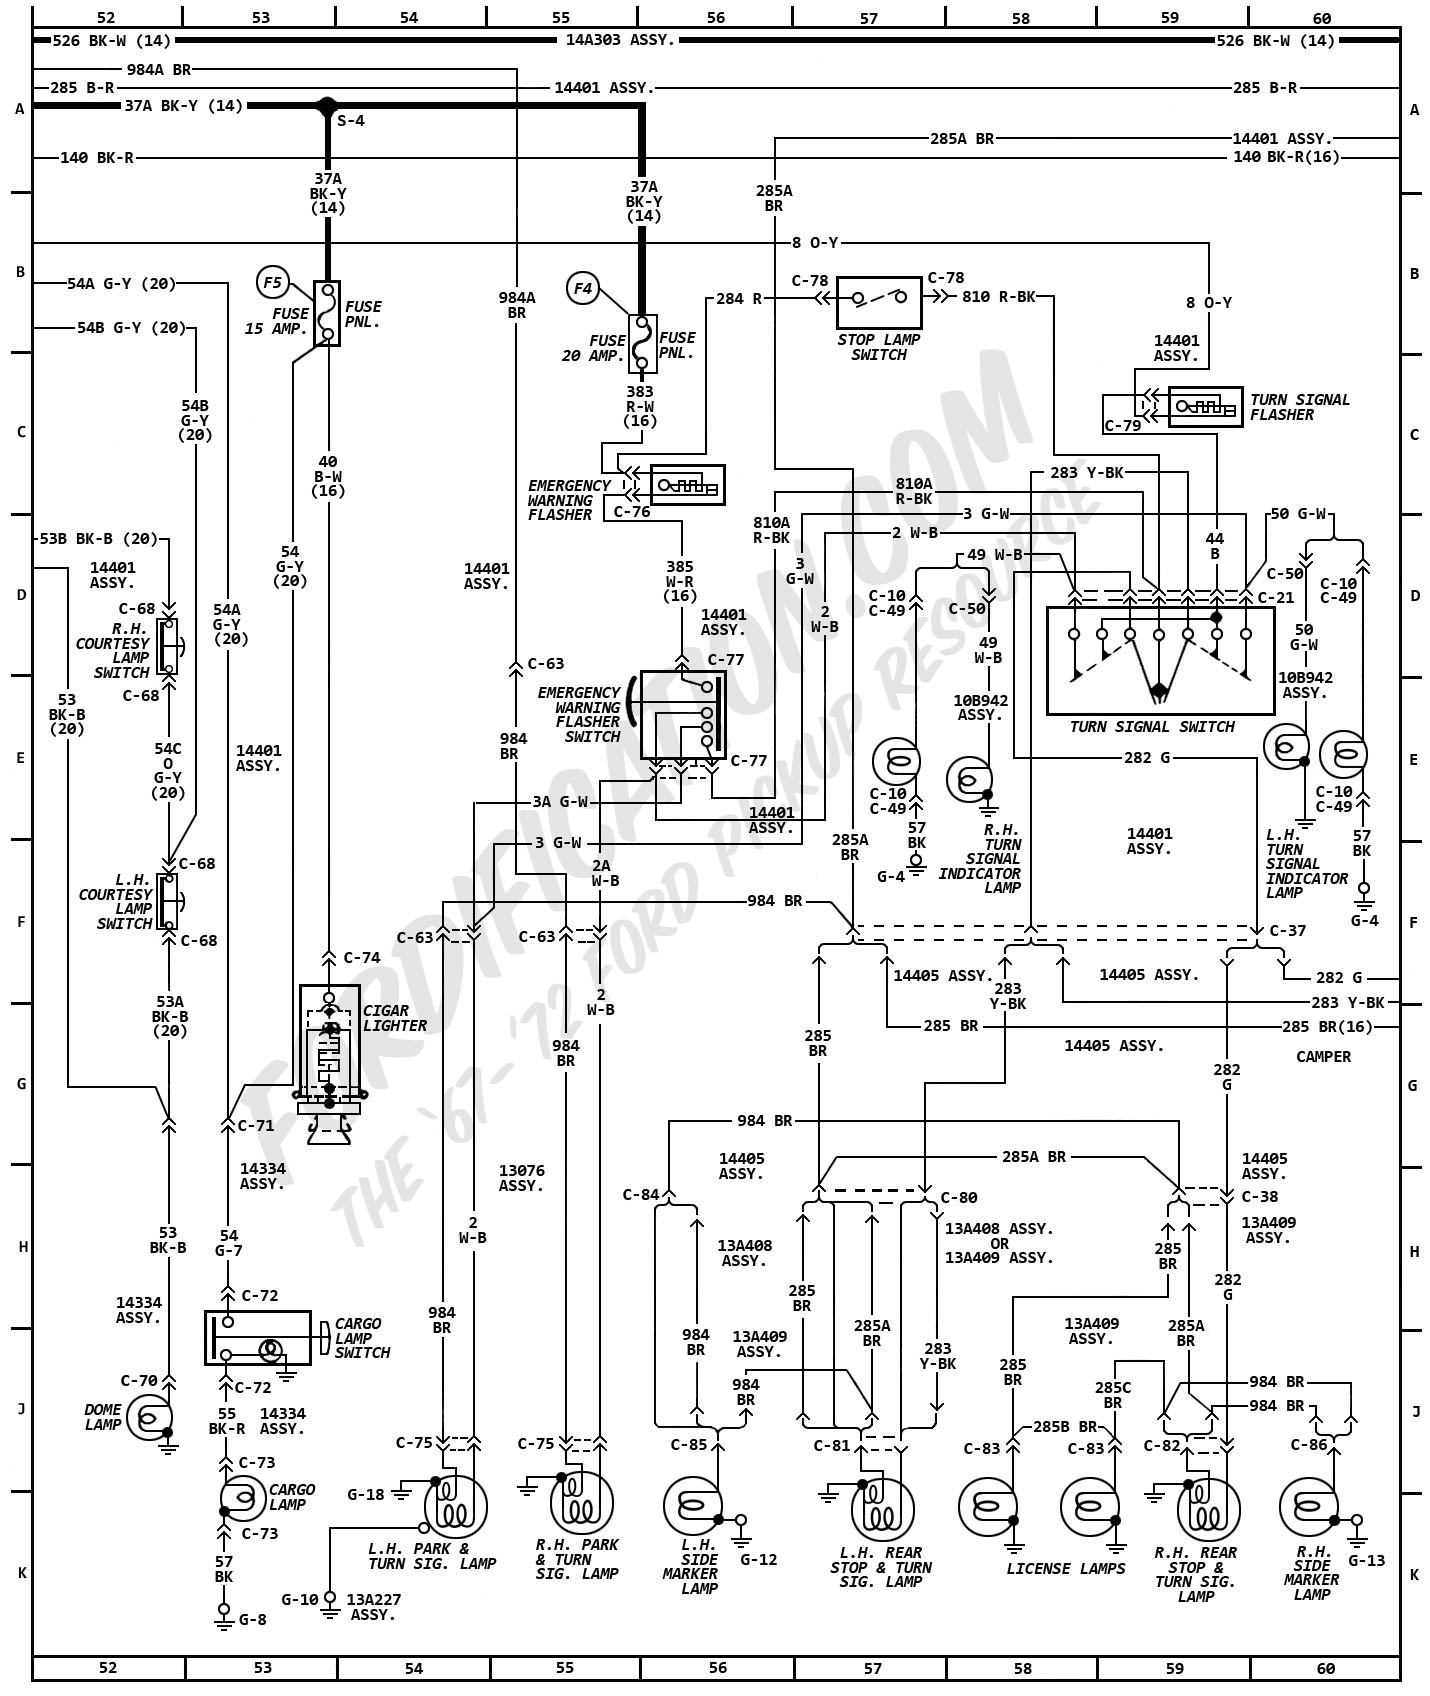 1974 F100 Wiring Harness Wire Data Schema 1969 1972 Ford Truck Diagrams Fordification Com 1977